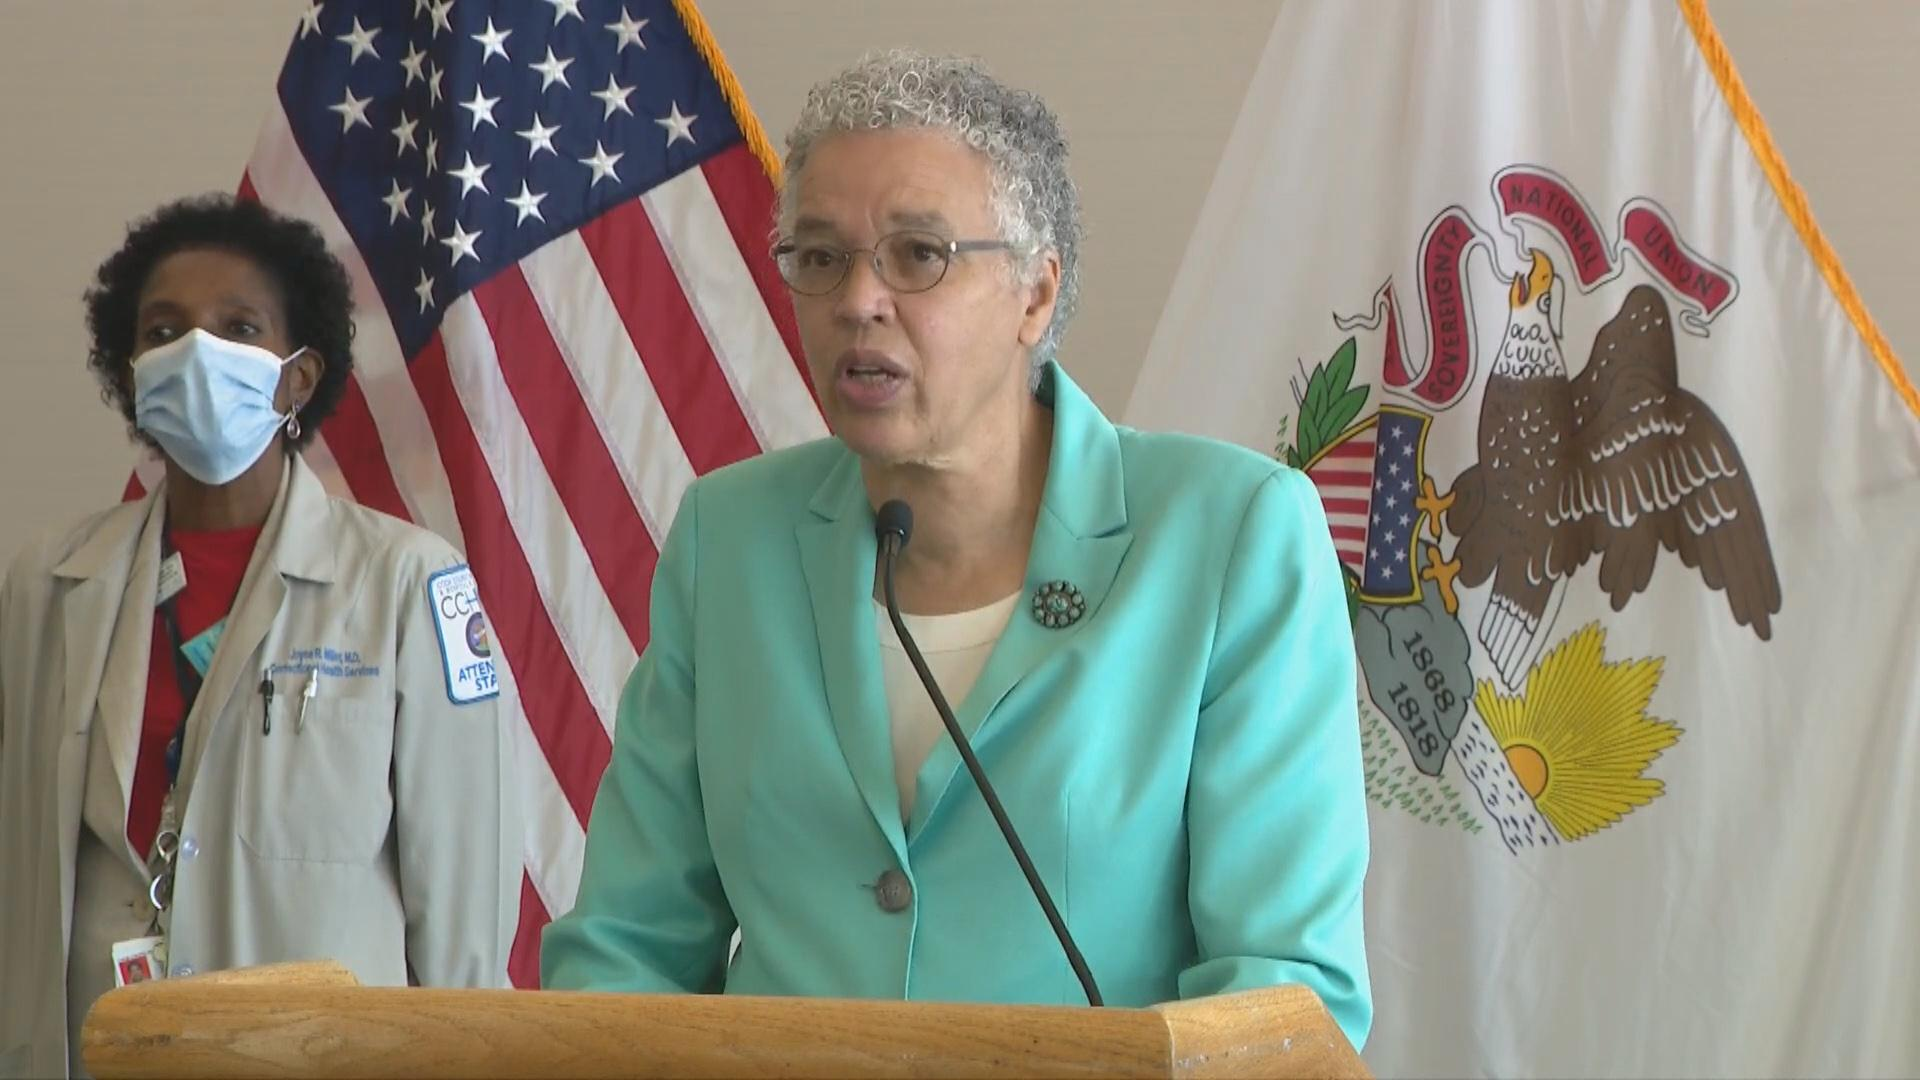 Cook County Board President Toni Preckwinkle talks about the rise in deaths by suicide in the Black community at a press conference on Tuesday, Aug. 4, 2020. (Toni Preckwinkle / Facebook)